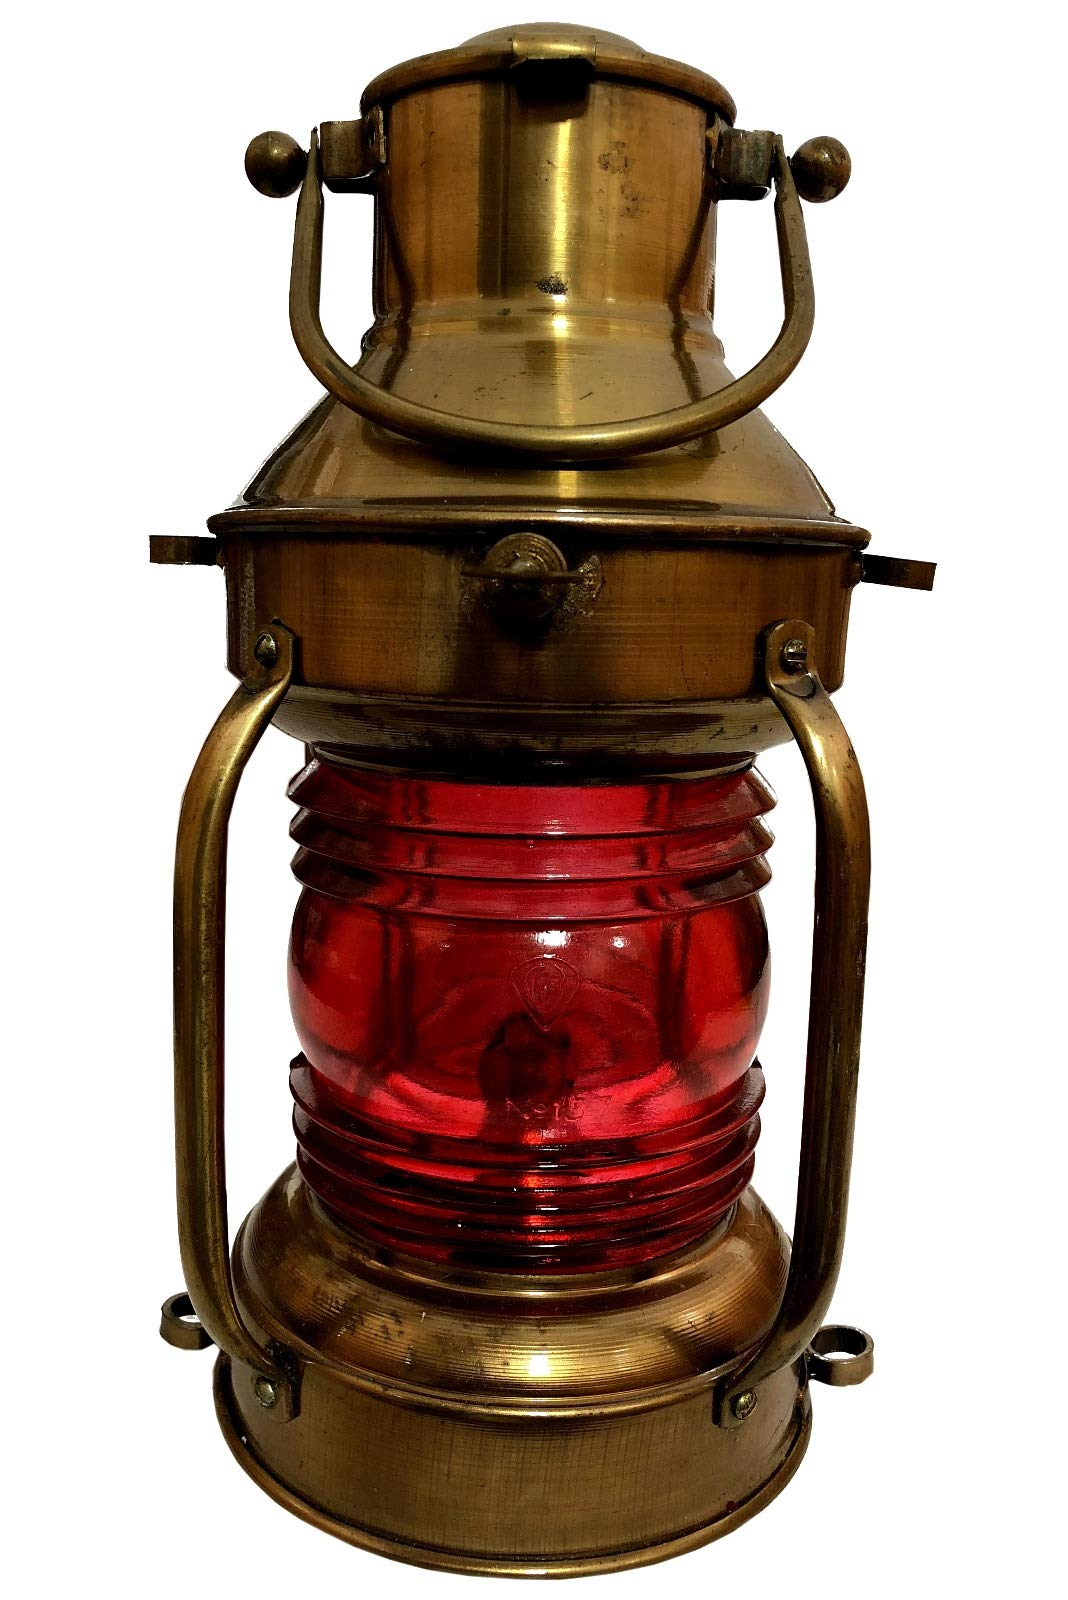 Global Art World Antique Red Round Shape Nautical Personalized Ship Boat Maritime Lamp Décor Lantern Hanging Oil Lamps ML 016